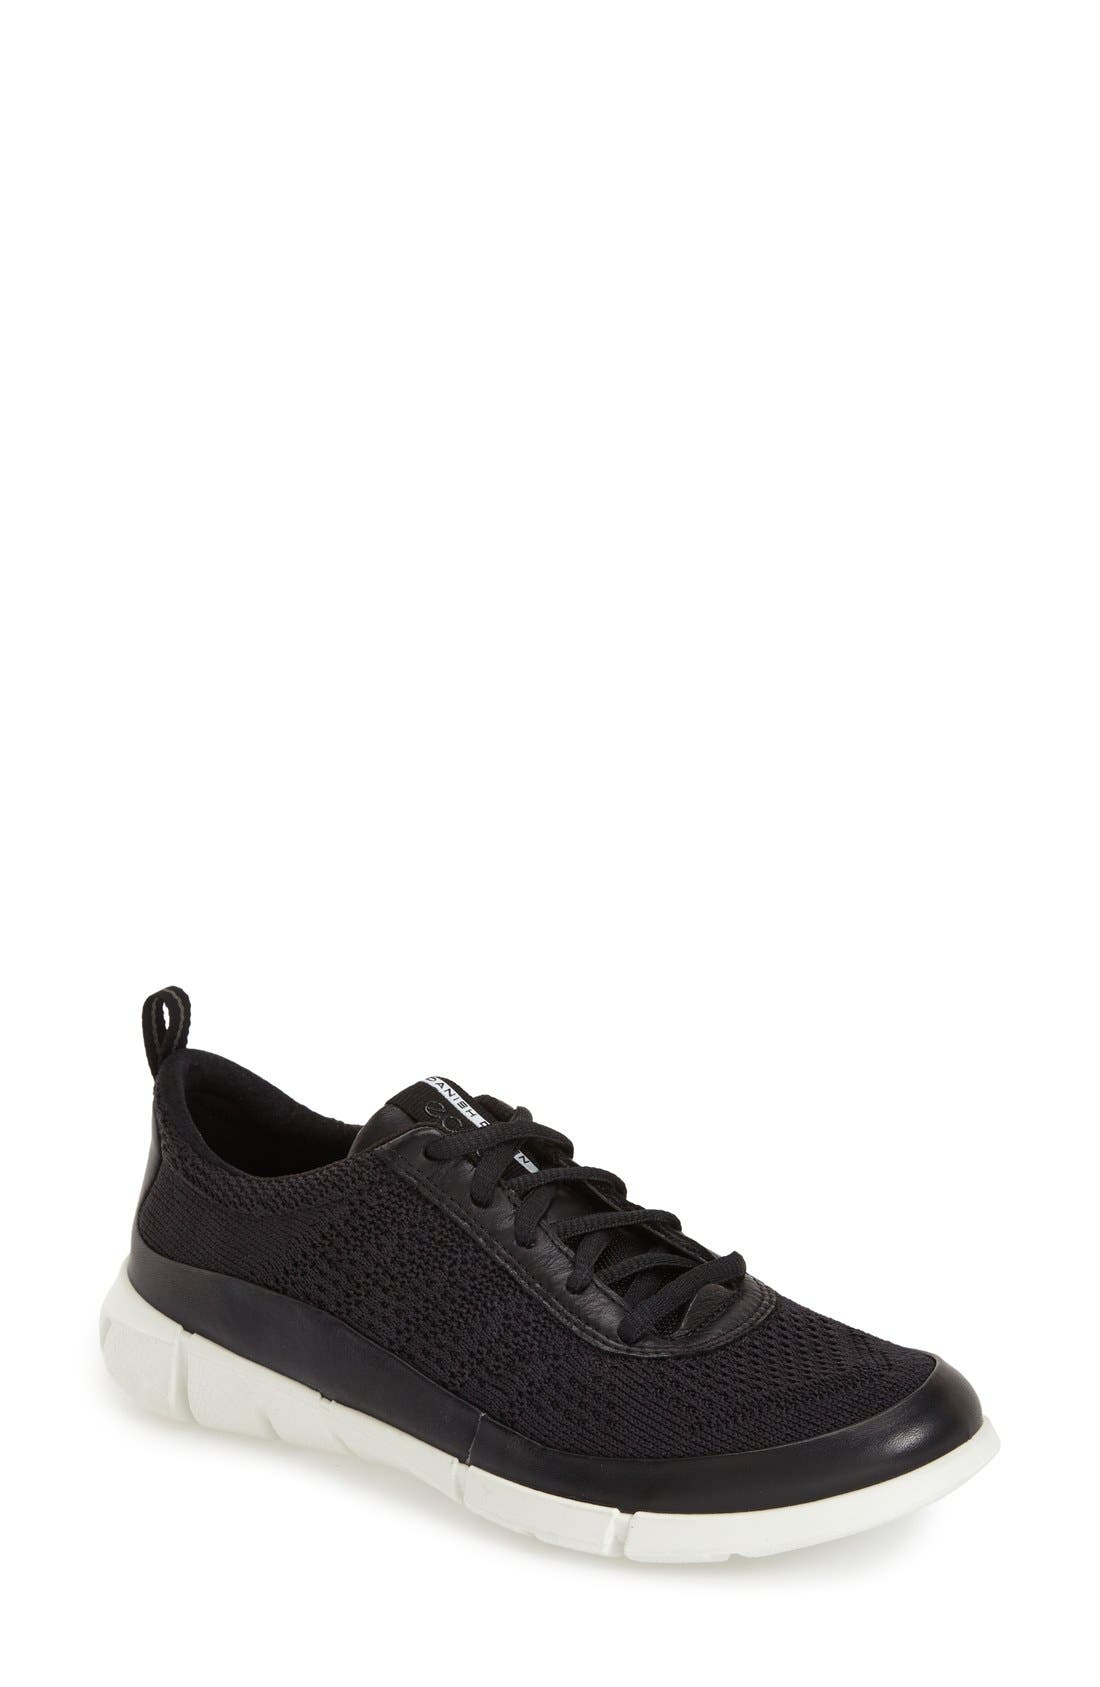 Main Image - ECCO 'Intrinsic' Sneaker (Women)